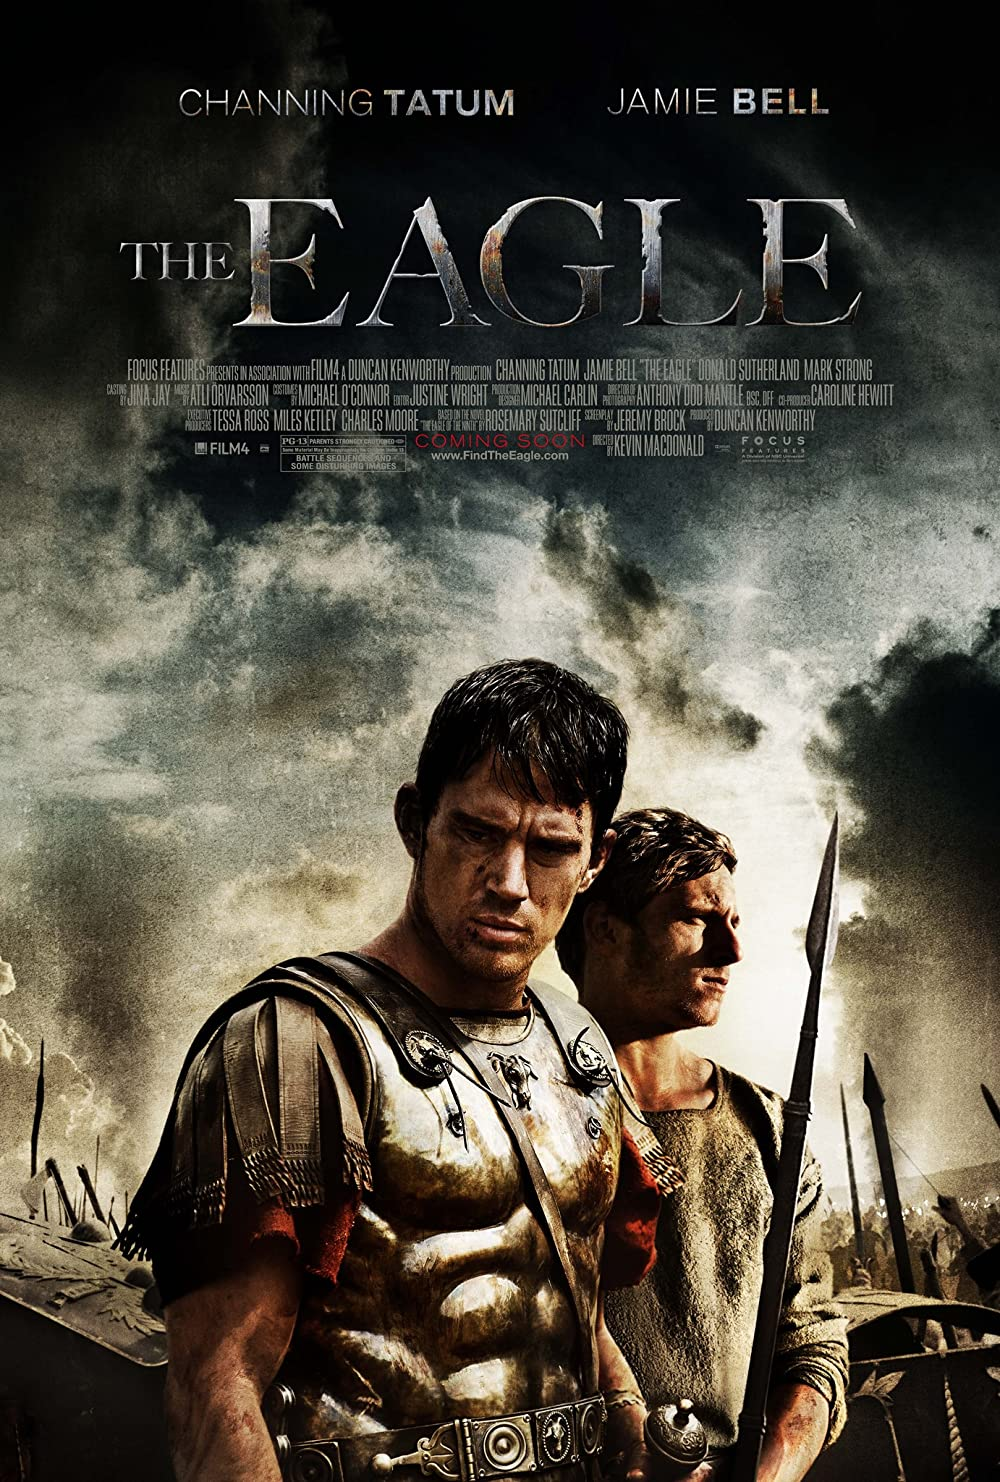 The Eagle 2011 Hindi Dual Audio 720p BluRay ESubs 800MB x264 AAC